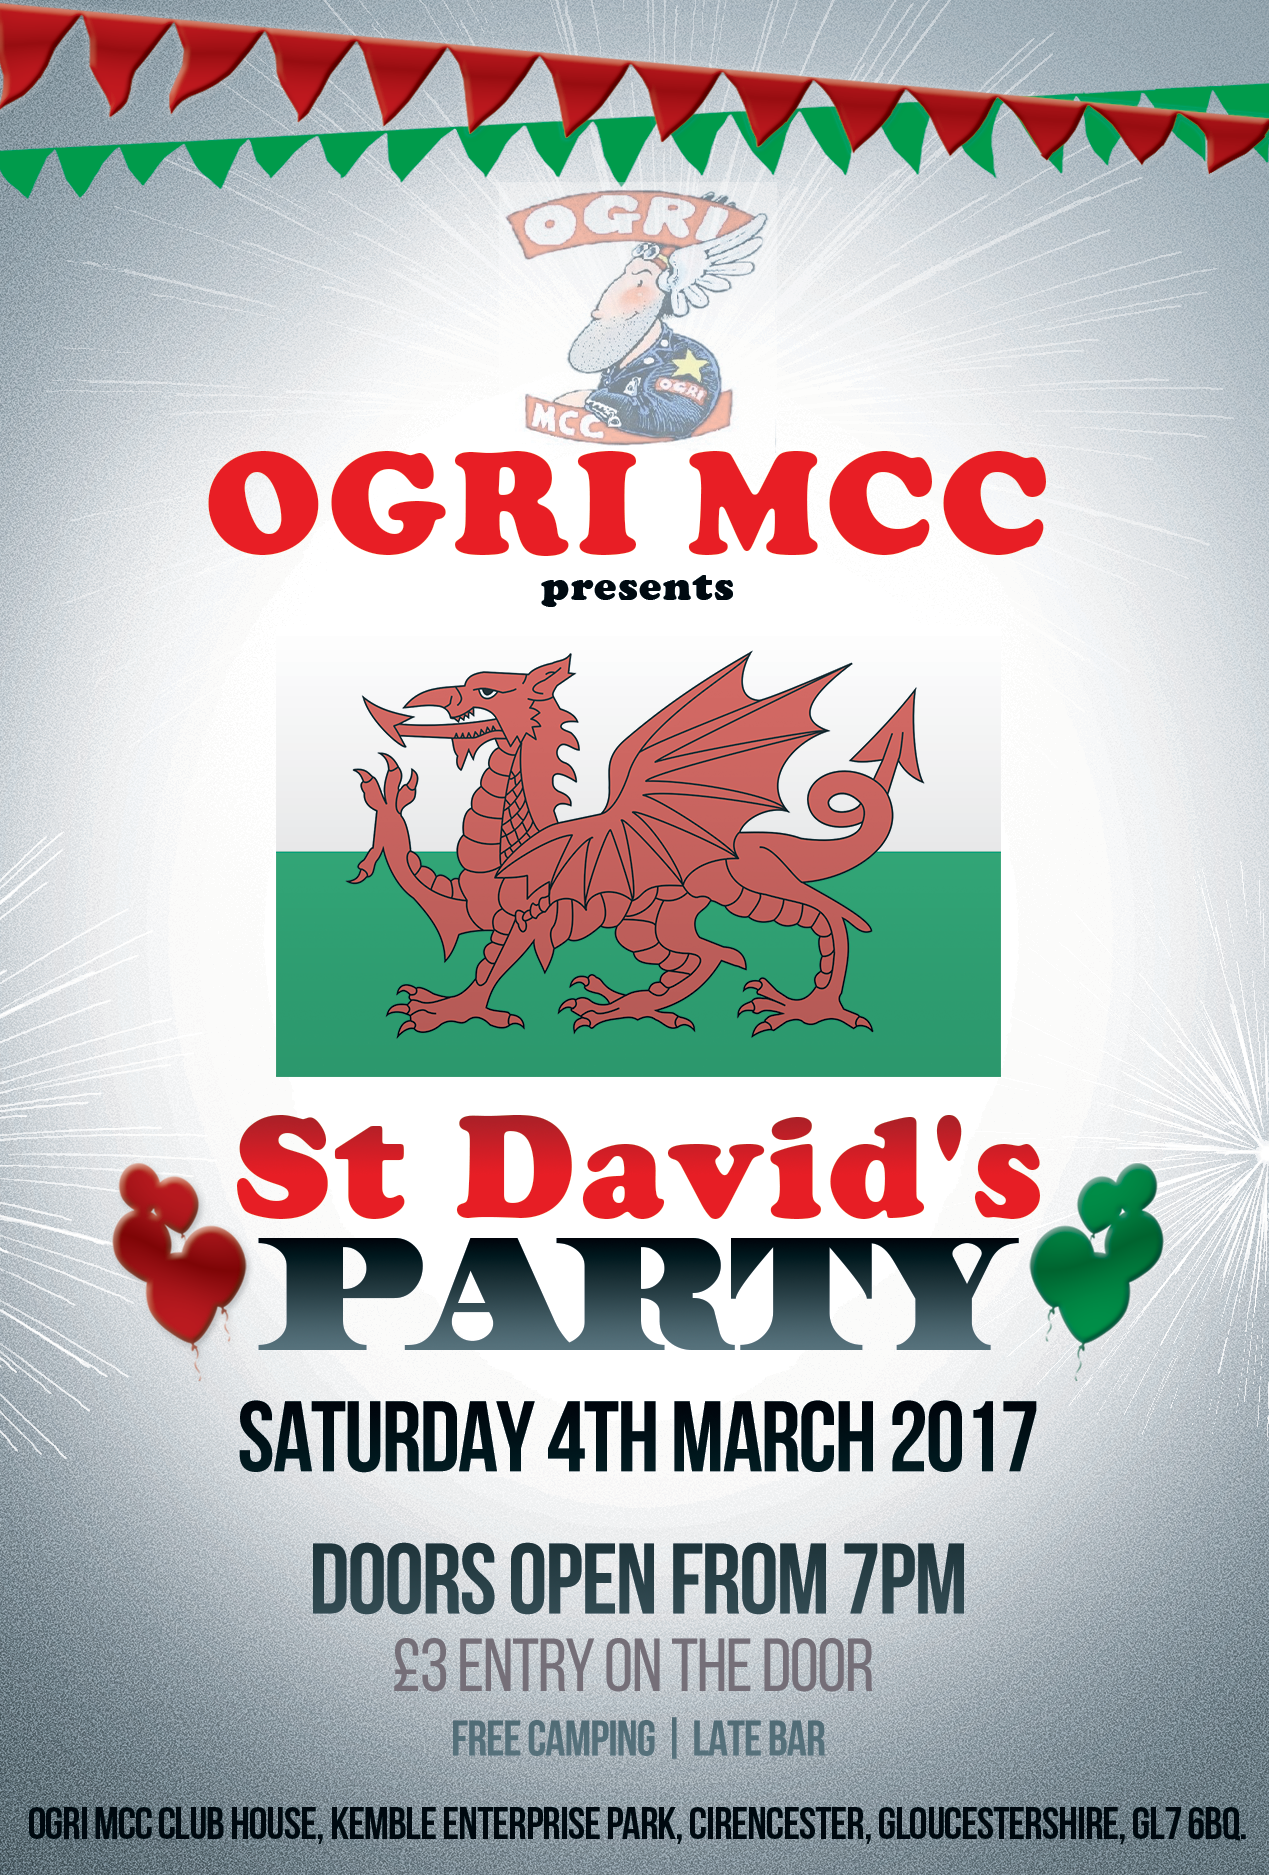 4th March Open Party